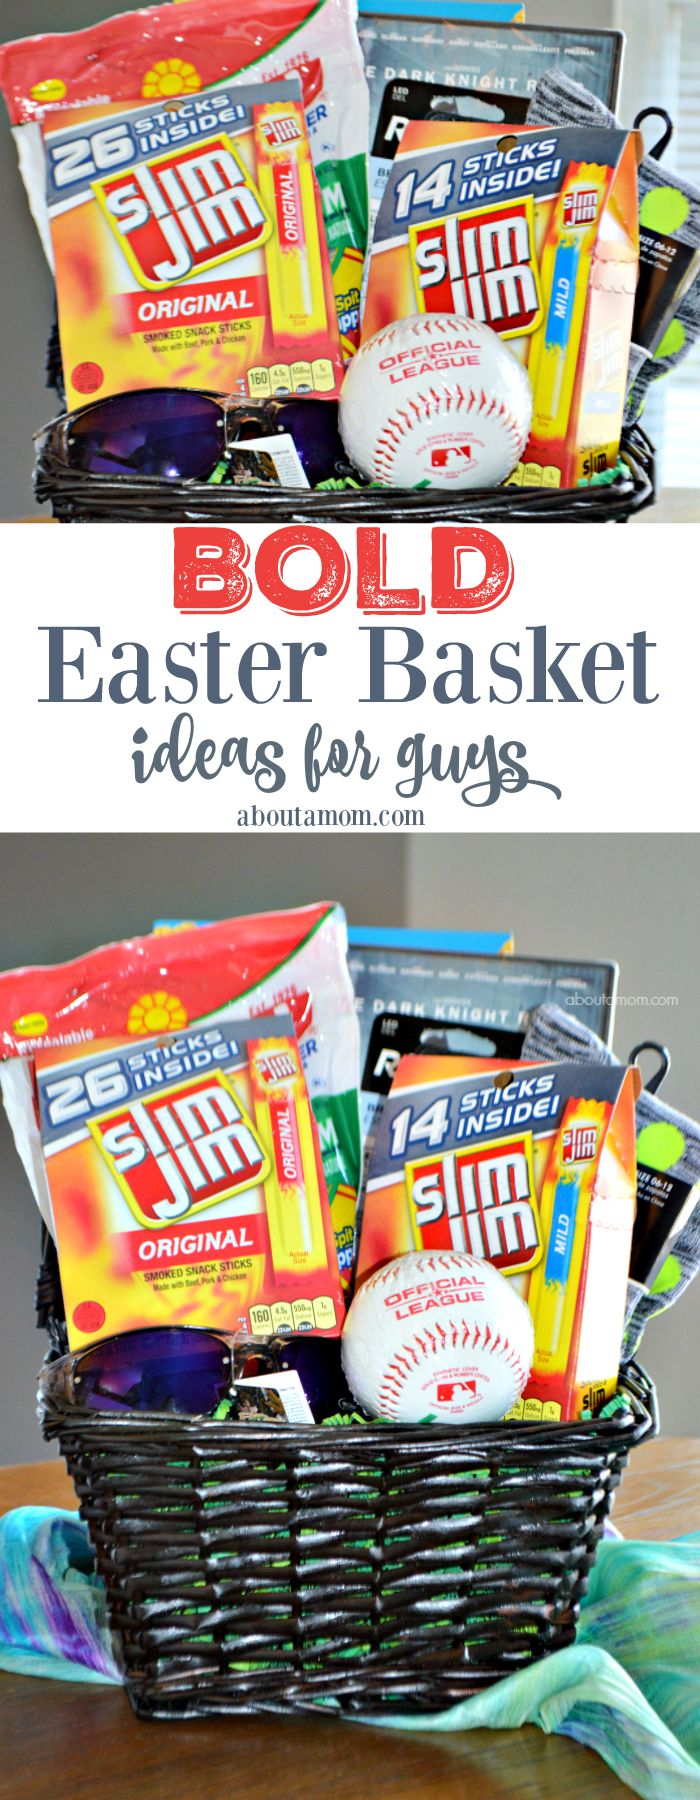 111 best images about easter on pinterest peeps easter egg a helpful list of easter basket ideas for guys treat the special man or teen negle Images